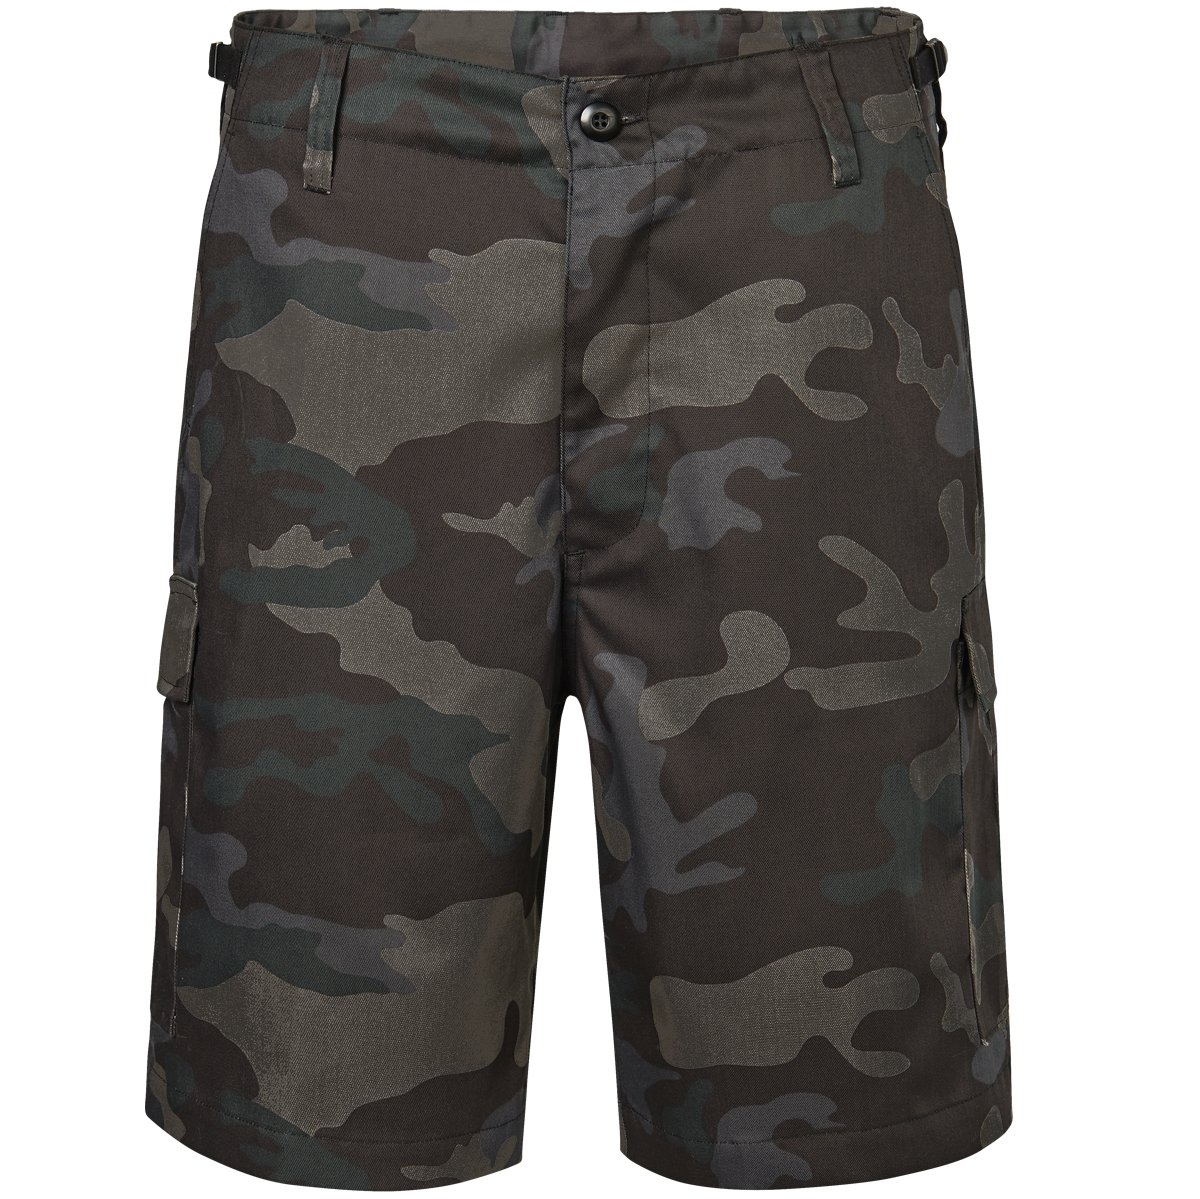 Brandit Men's US Ranger Shorts Dark Camo Size 7XL by Brandit (Image #1)